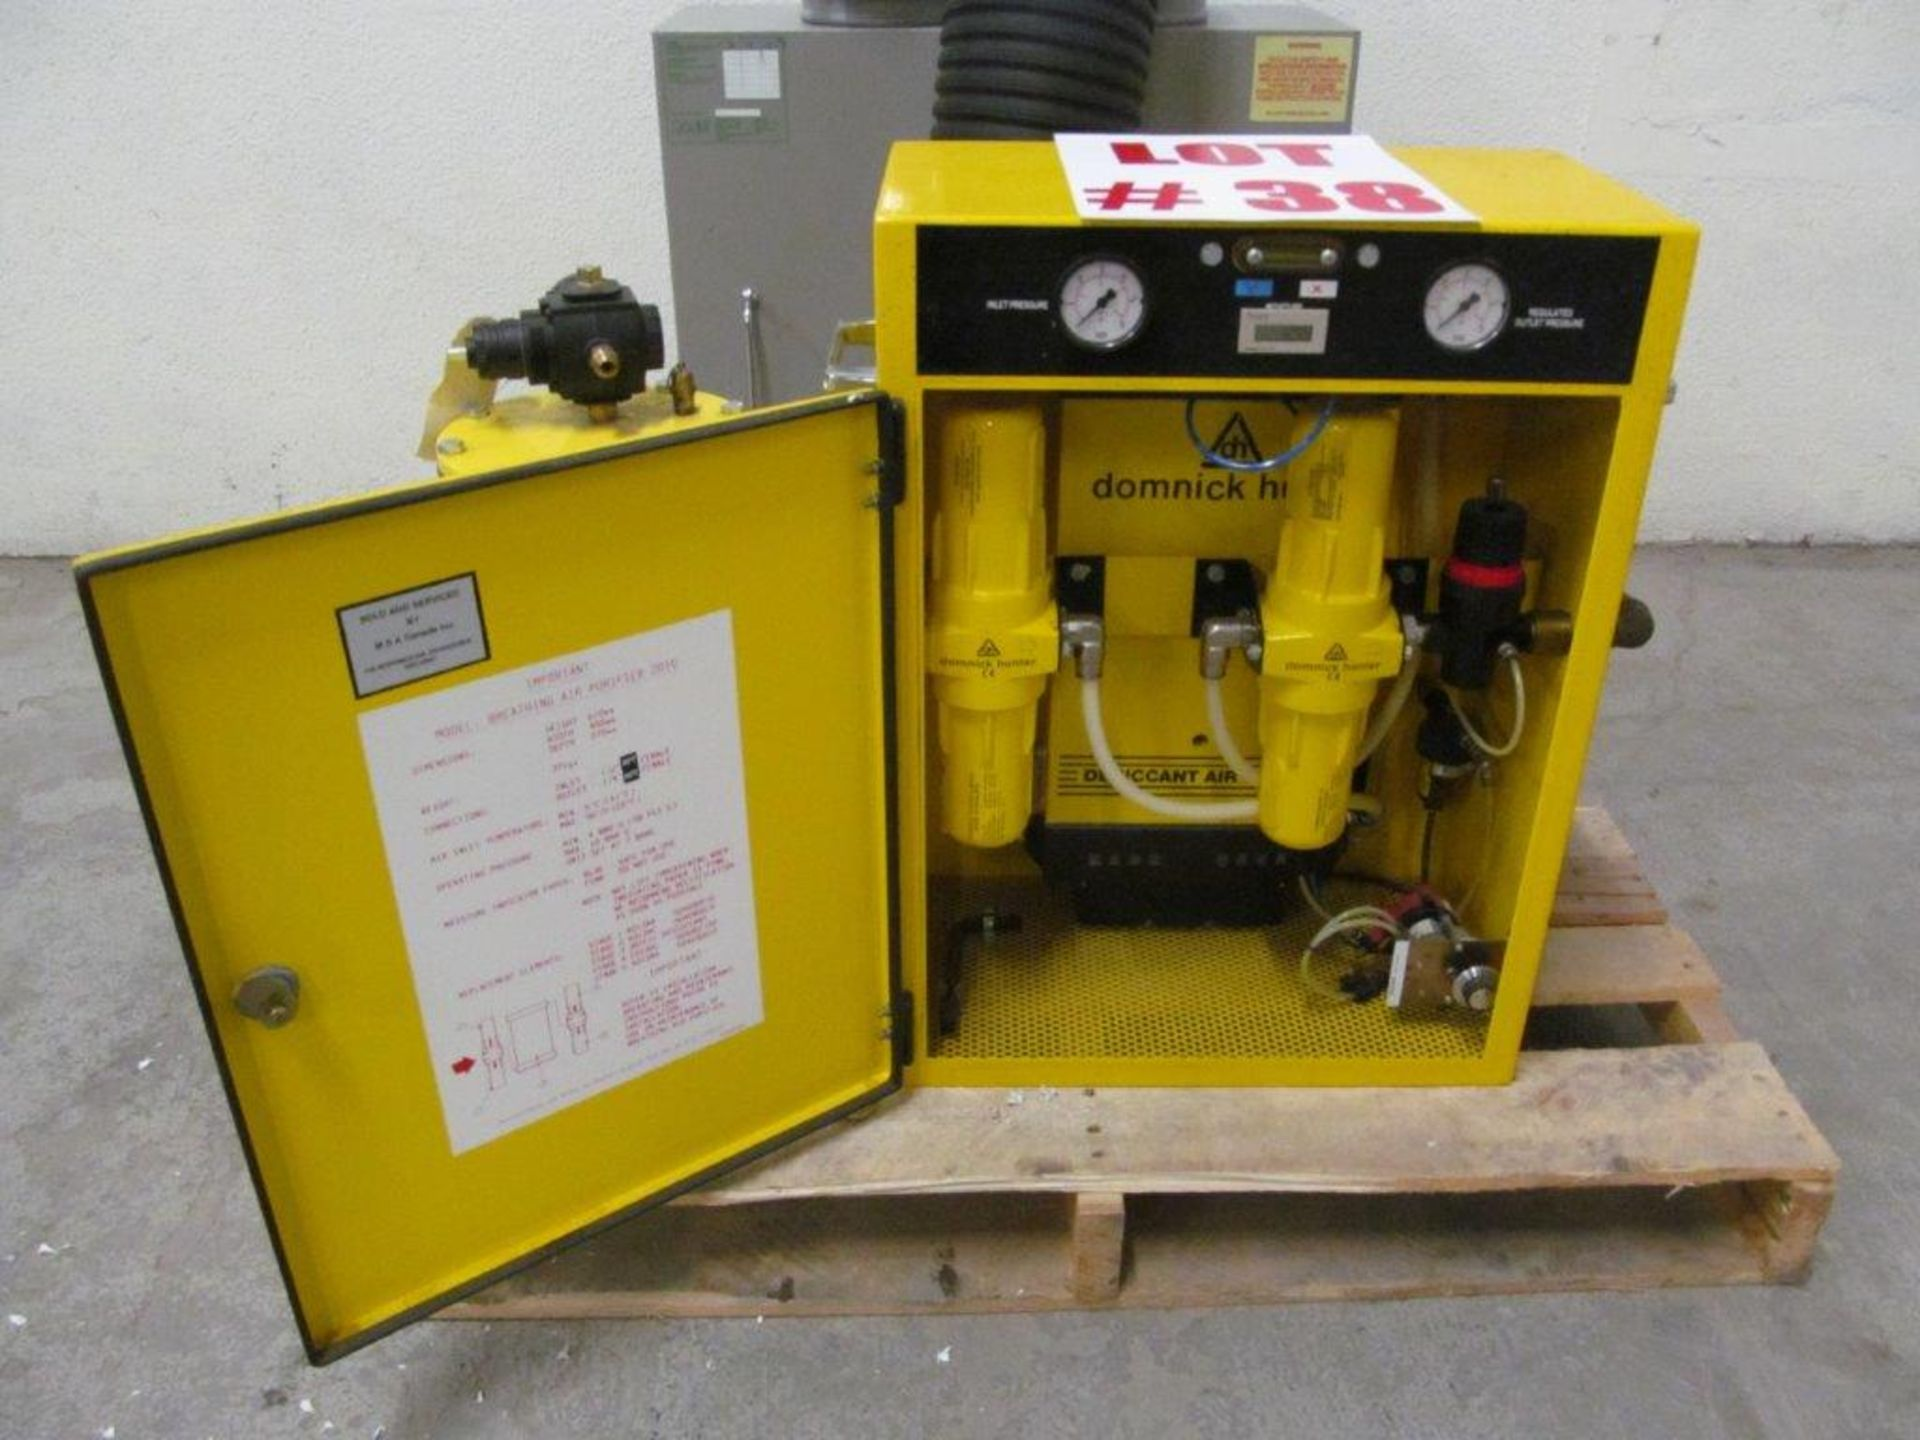 Lot 38 - MSA CO + CO2 REMOVER, DOMNICK HUNTER BREATHING AIR PURIFIER 2010, S/N 067-37643 - LOCATION,